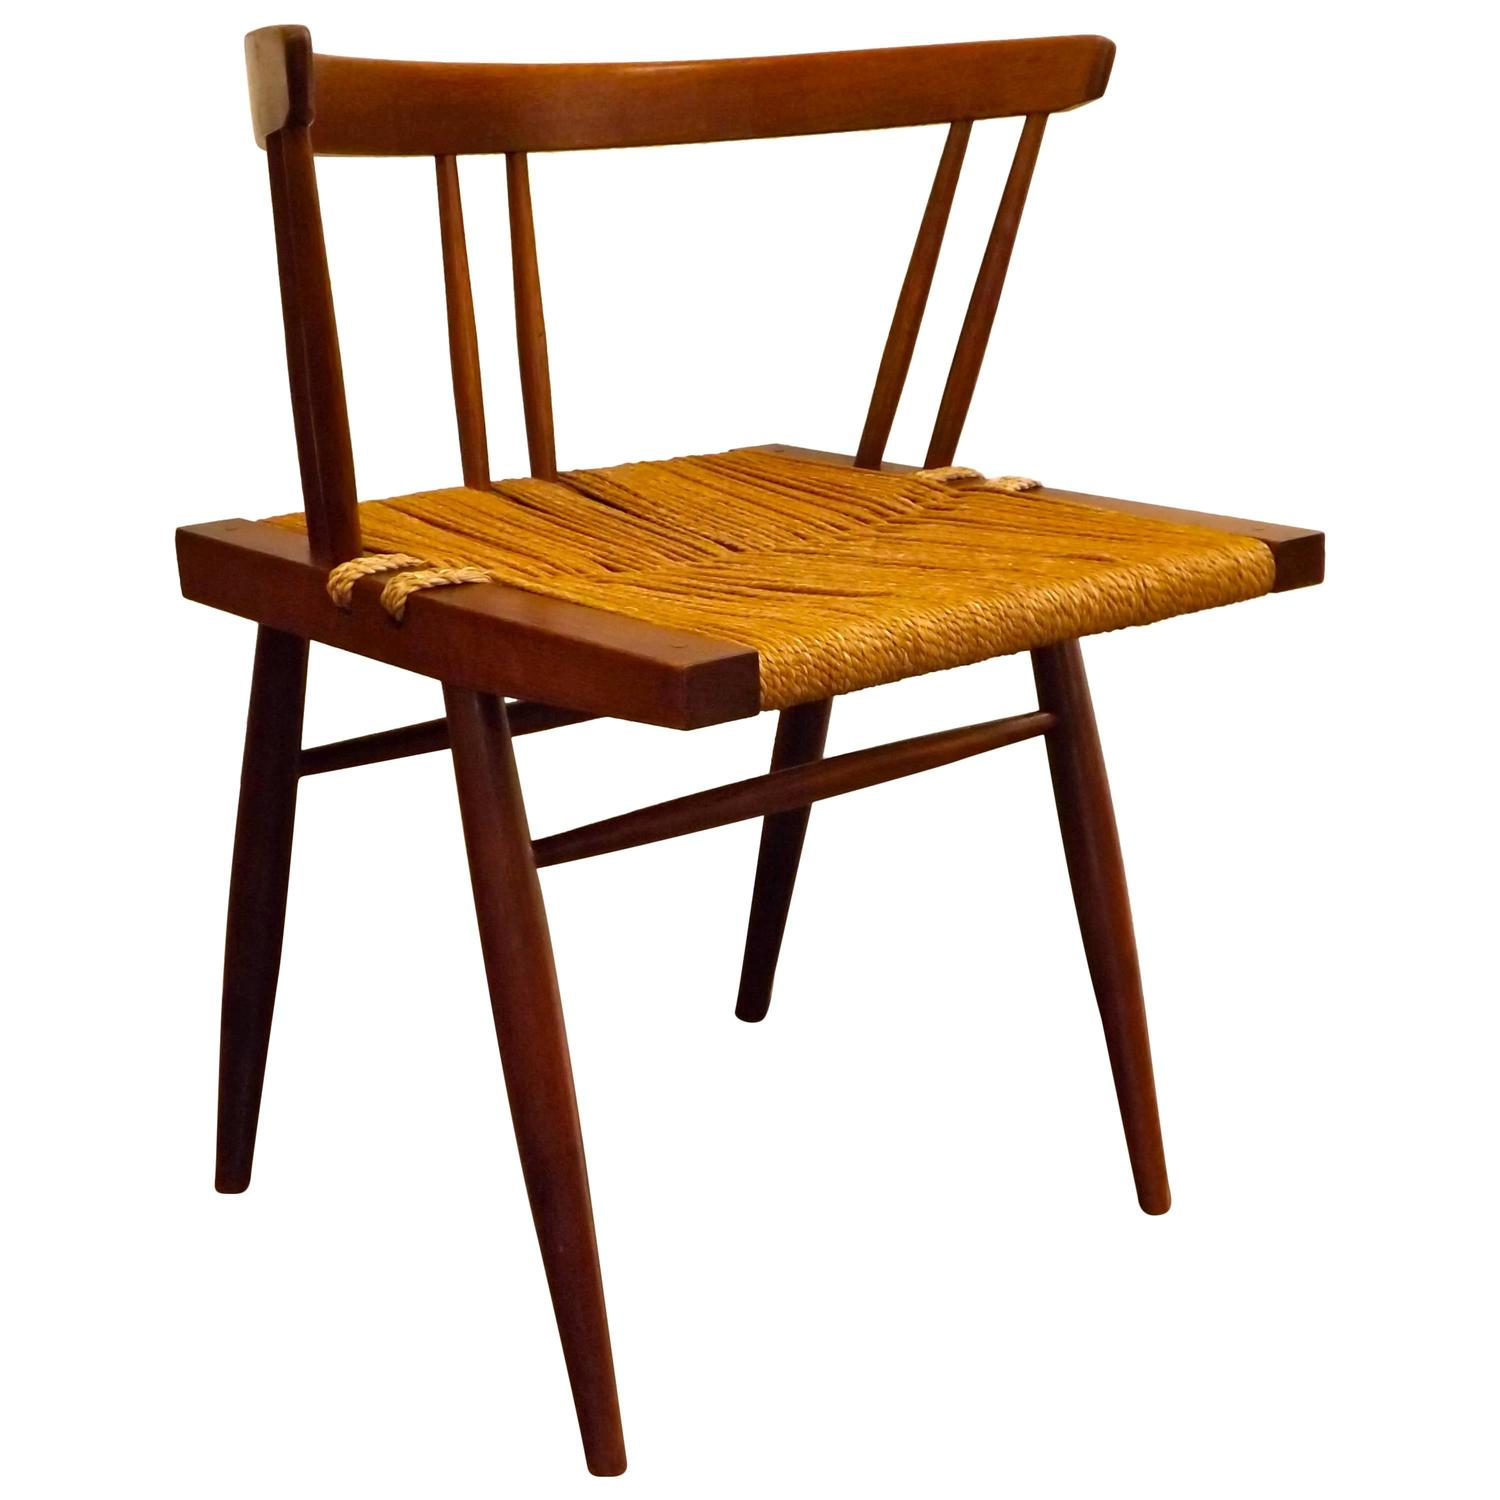 George Nakashima Chairs george nakashima grass seat chair for sale at 1stdibs